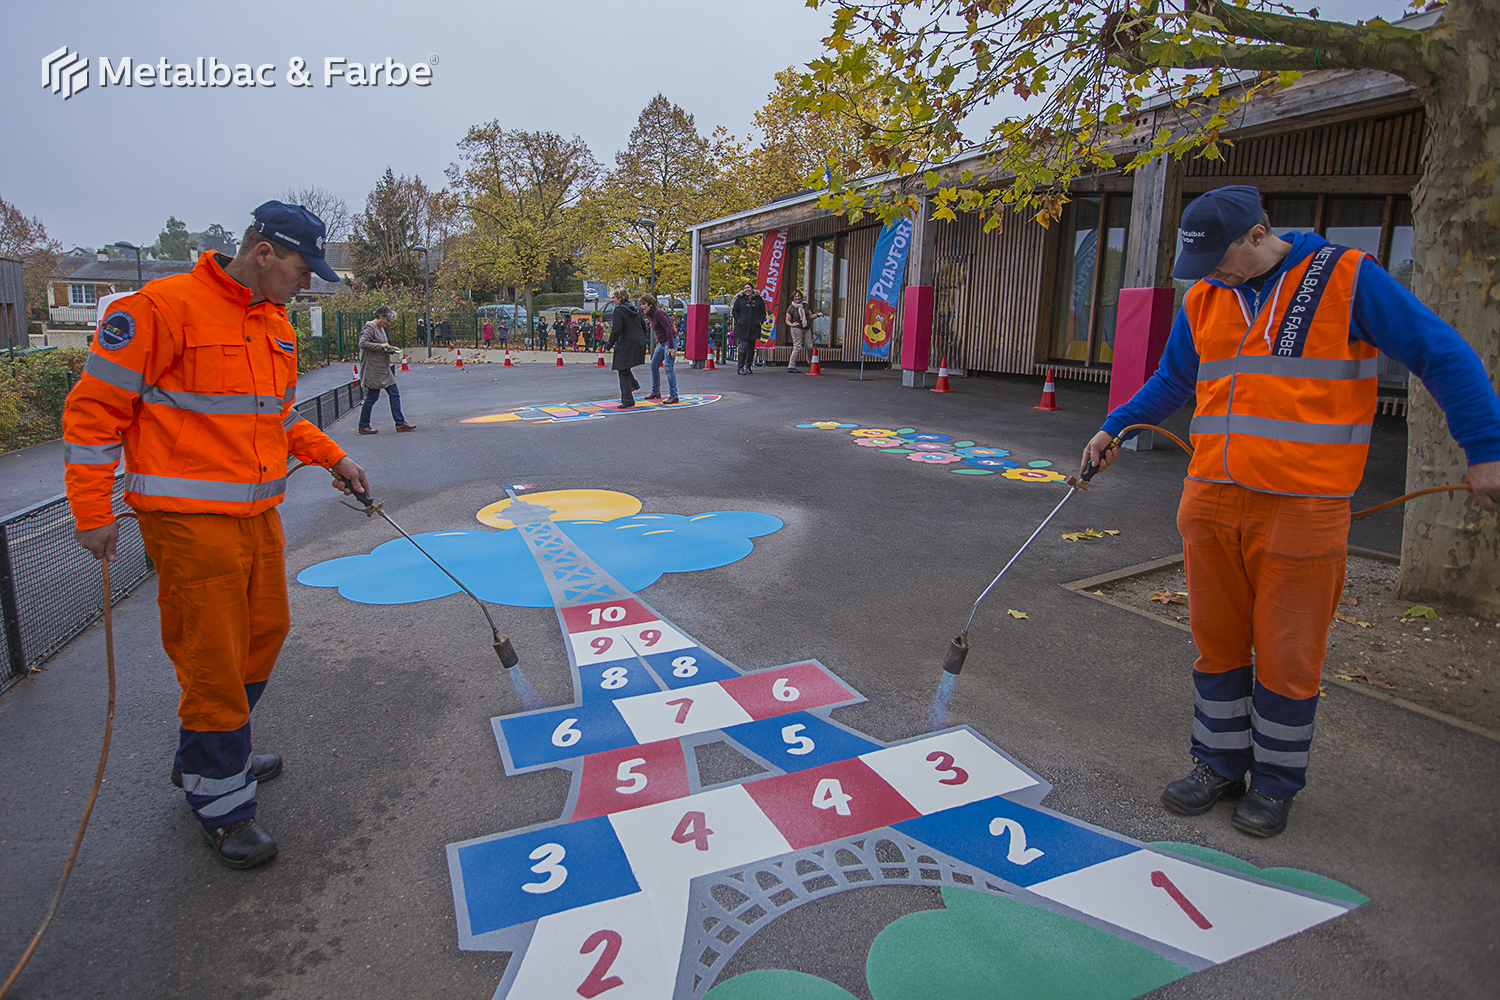 playground markings games; playground games for kids; outdoor play; math games; school yard games; educational games; asphalt games; interactive games; road markings signs; road traffic signs; alphabet game; animals games; handicap parking sign